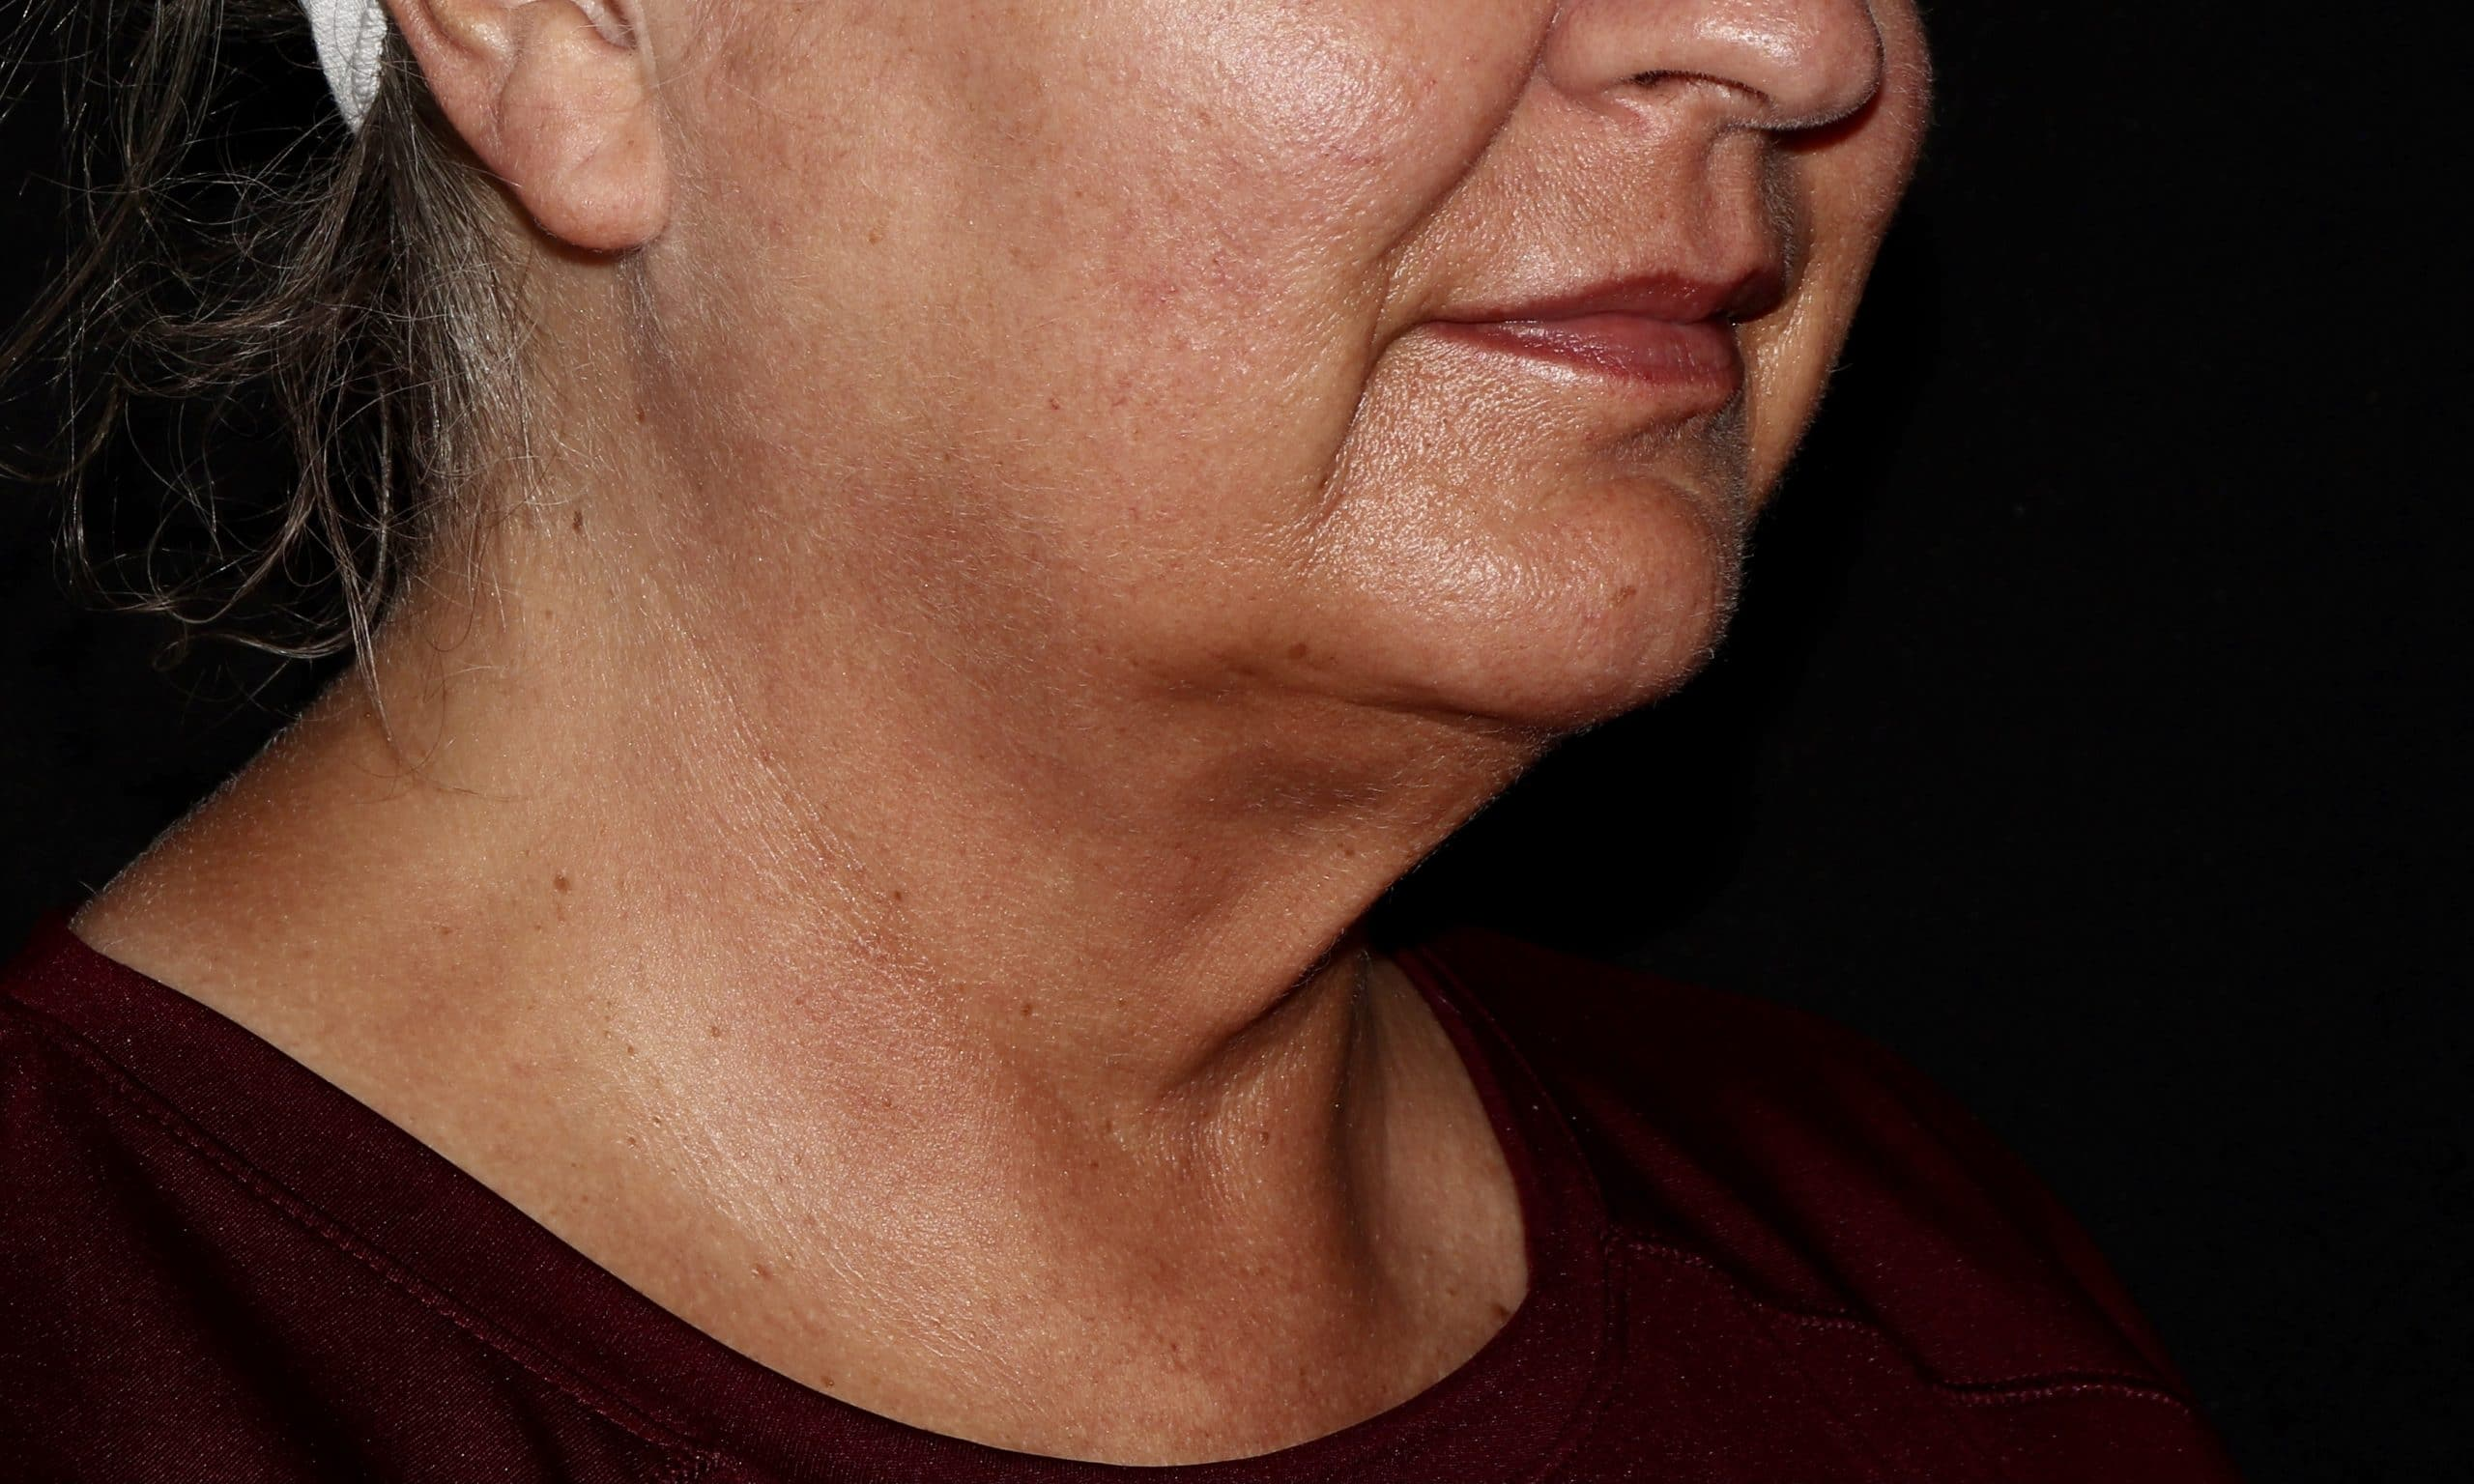 Coolsculpting Neck Treatment after results